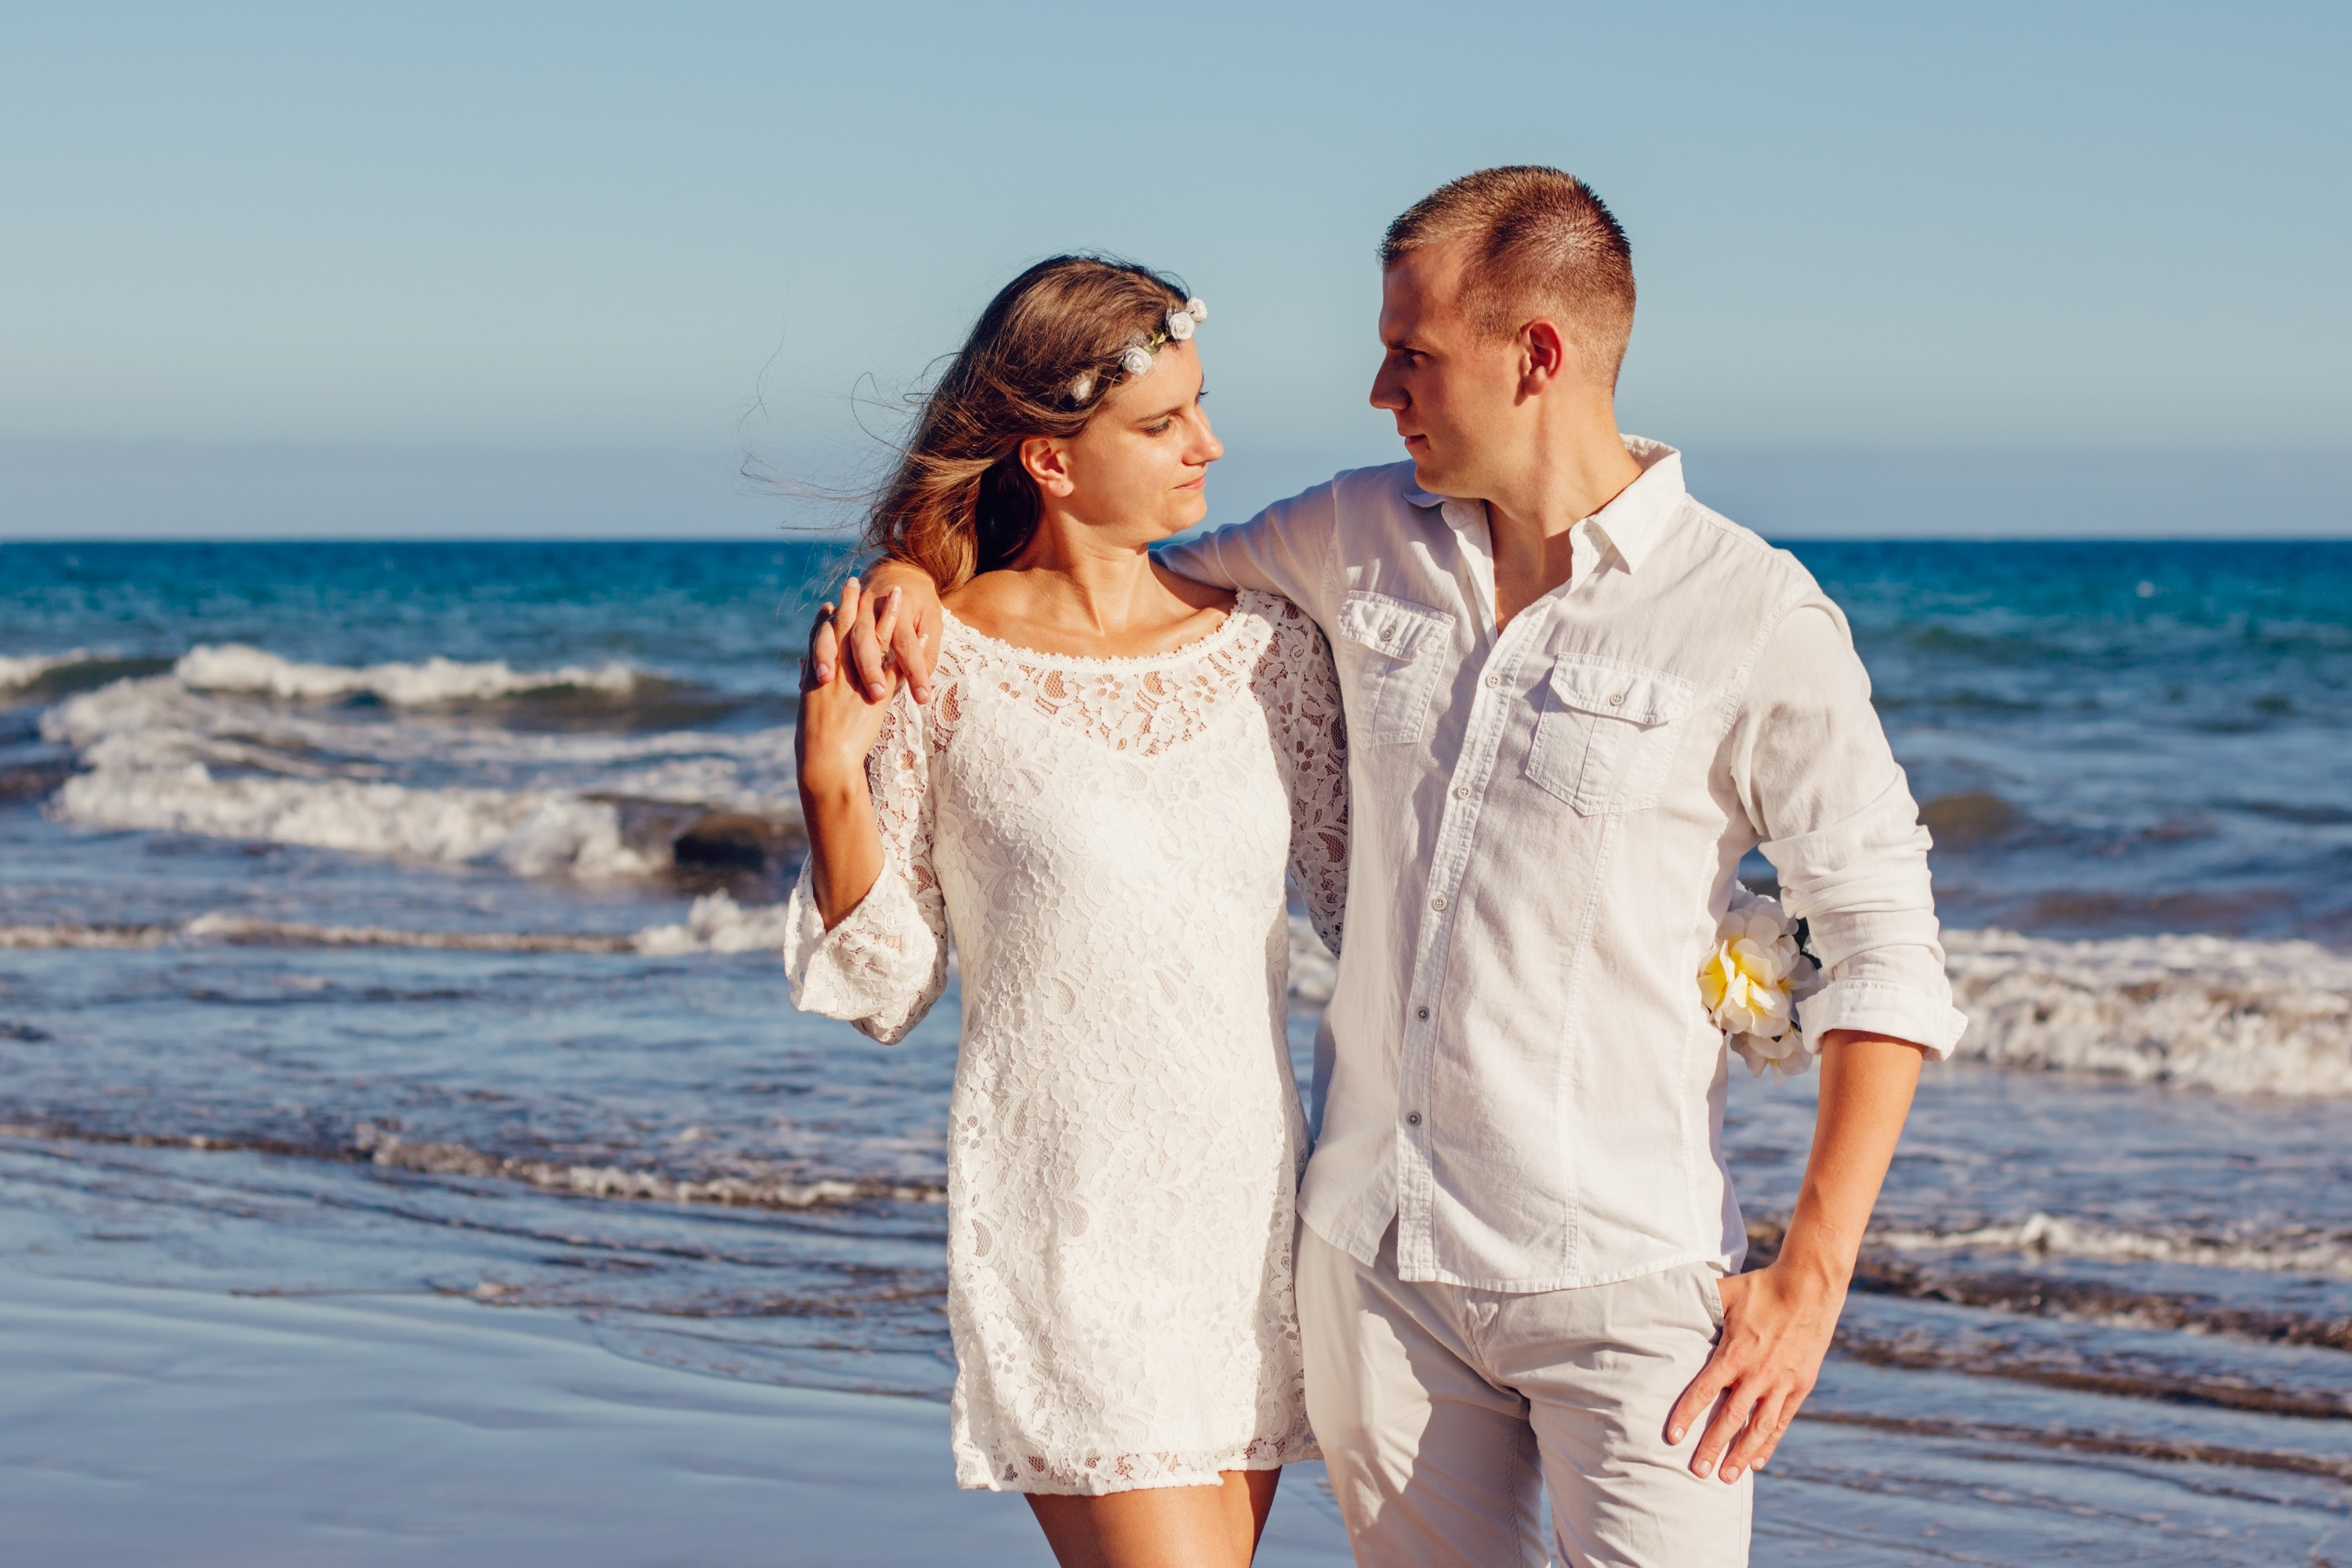 Couple Looking at Each Other Beside Beach, Beach, Sea, Woman, White, HQ Photo